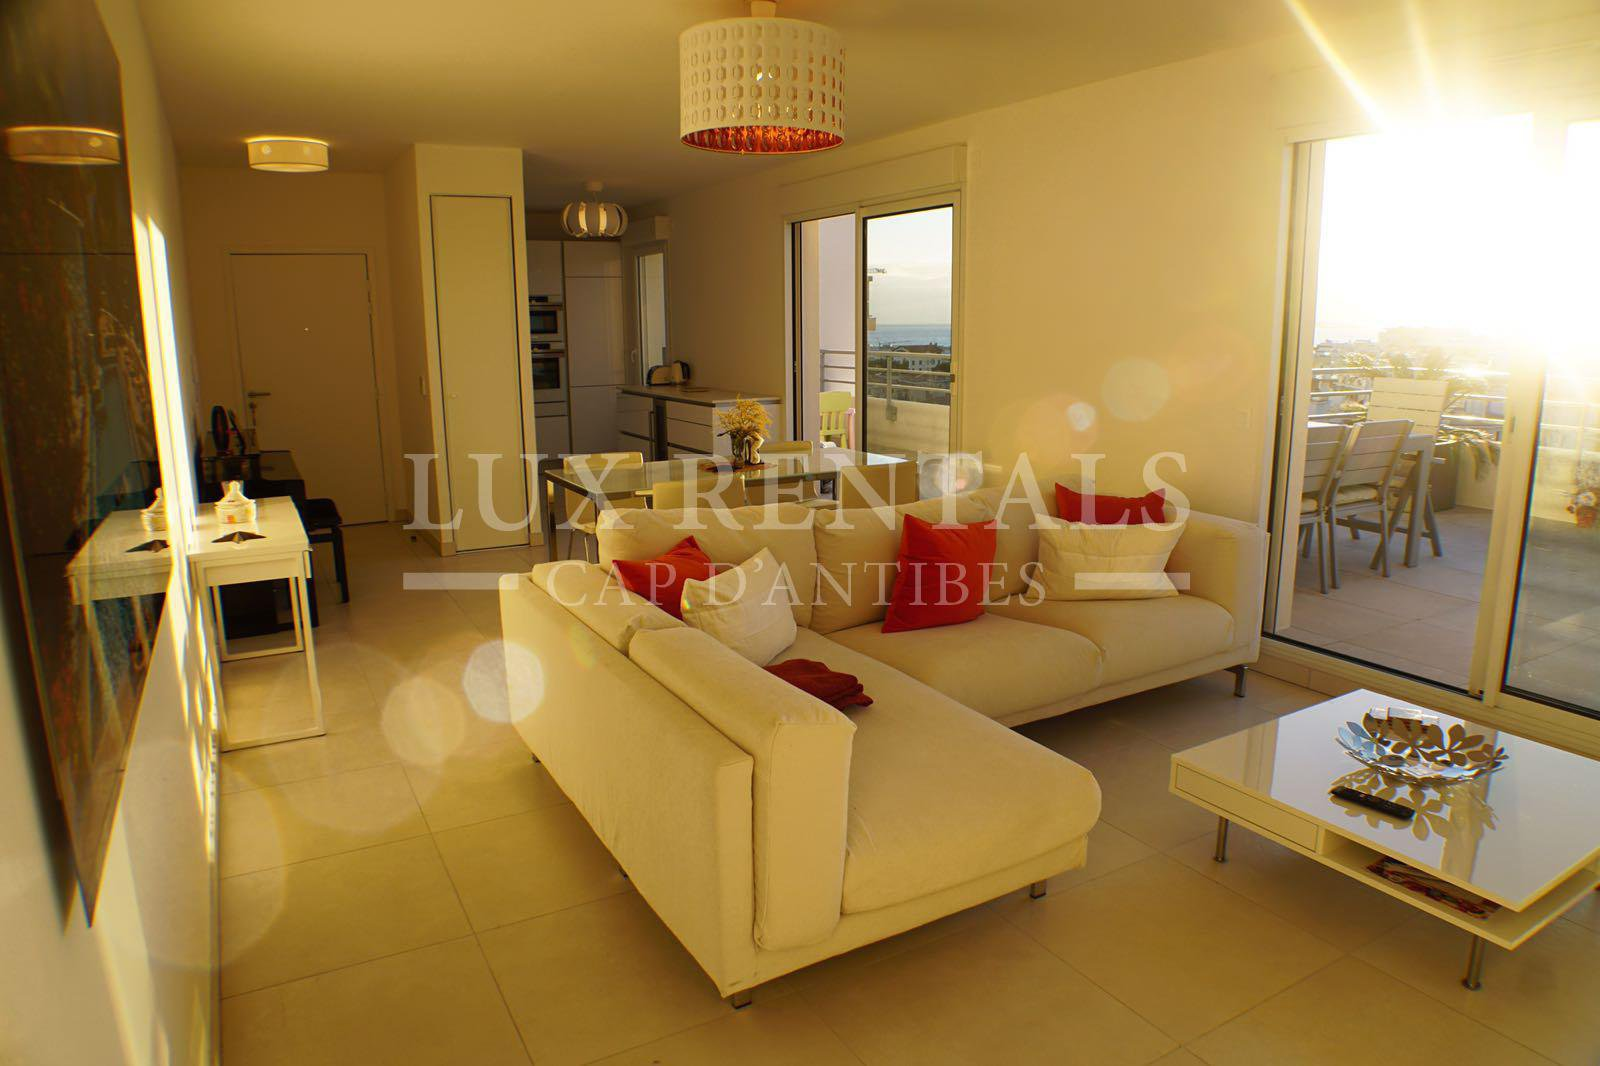 Thumbnail 1 Seasonal rental Apartment - Juan-les-Pins